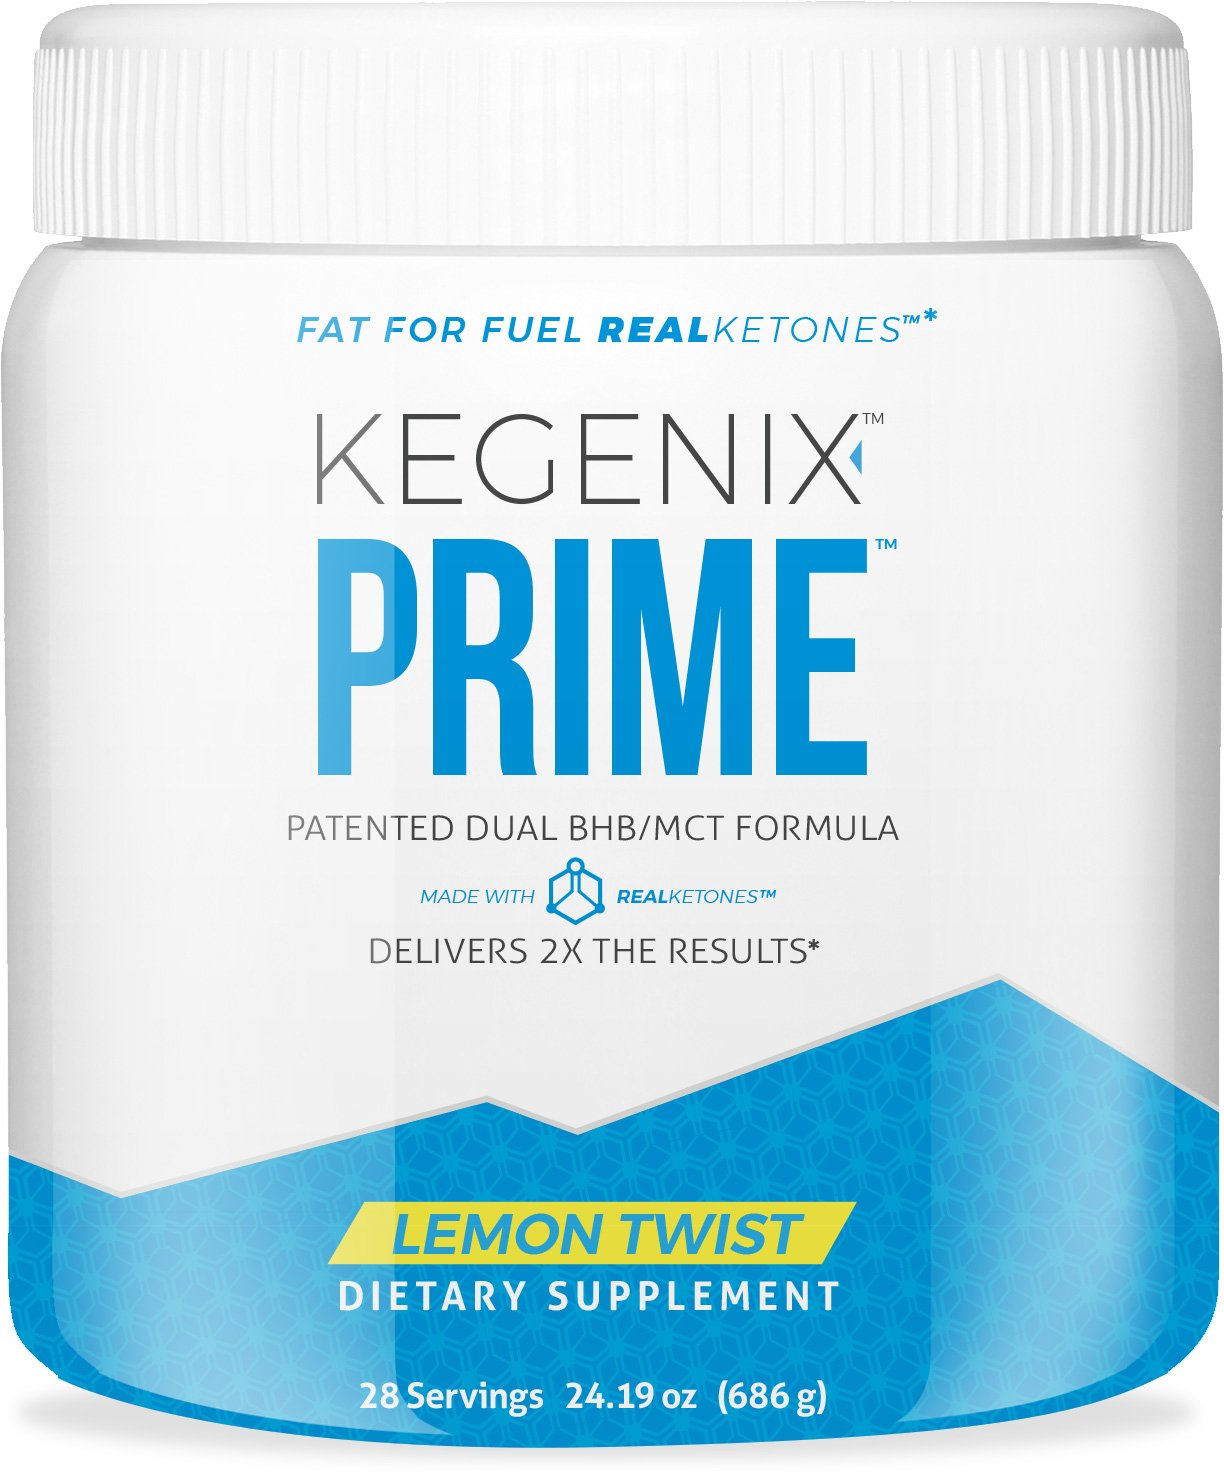 Kegenix Prime Lemon Twist Keto BHB Salts + MCT Oil Exogenous Ketones Ketogenic Diet Supplement by Real Ketones. Best Flavor Patented Ketosis Formula to Produce Ketones Naturally & Appetite Suppressant by KEGENIX